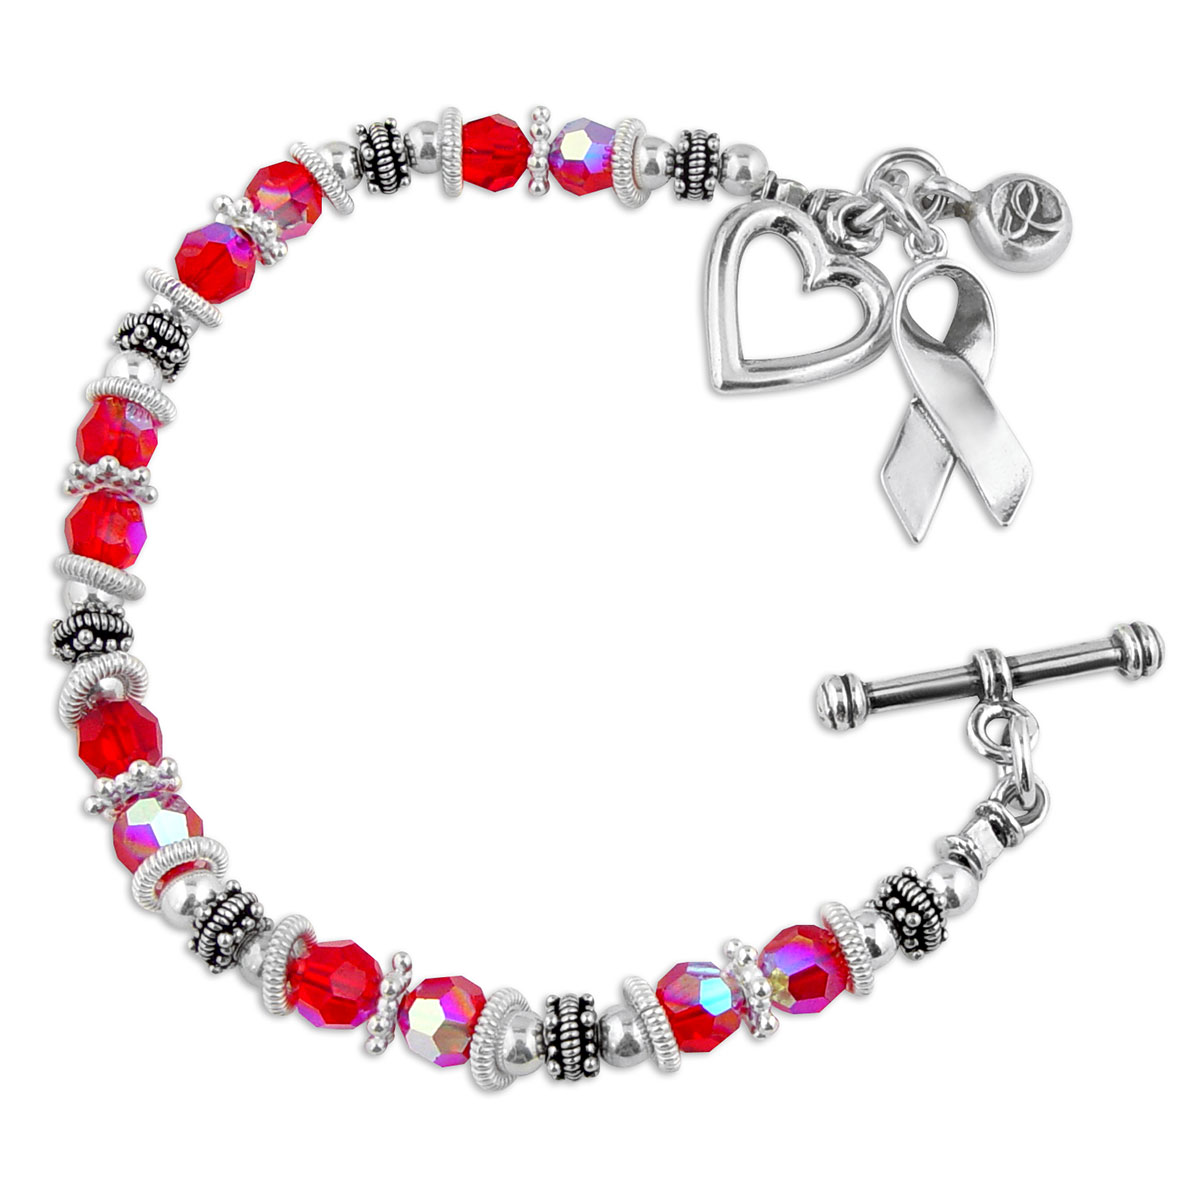 201582-AIDS Awareness Bracelet B